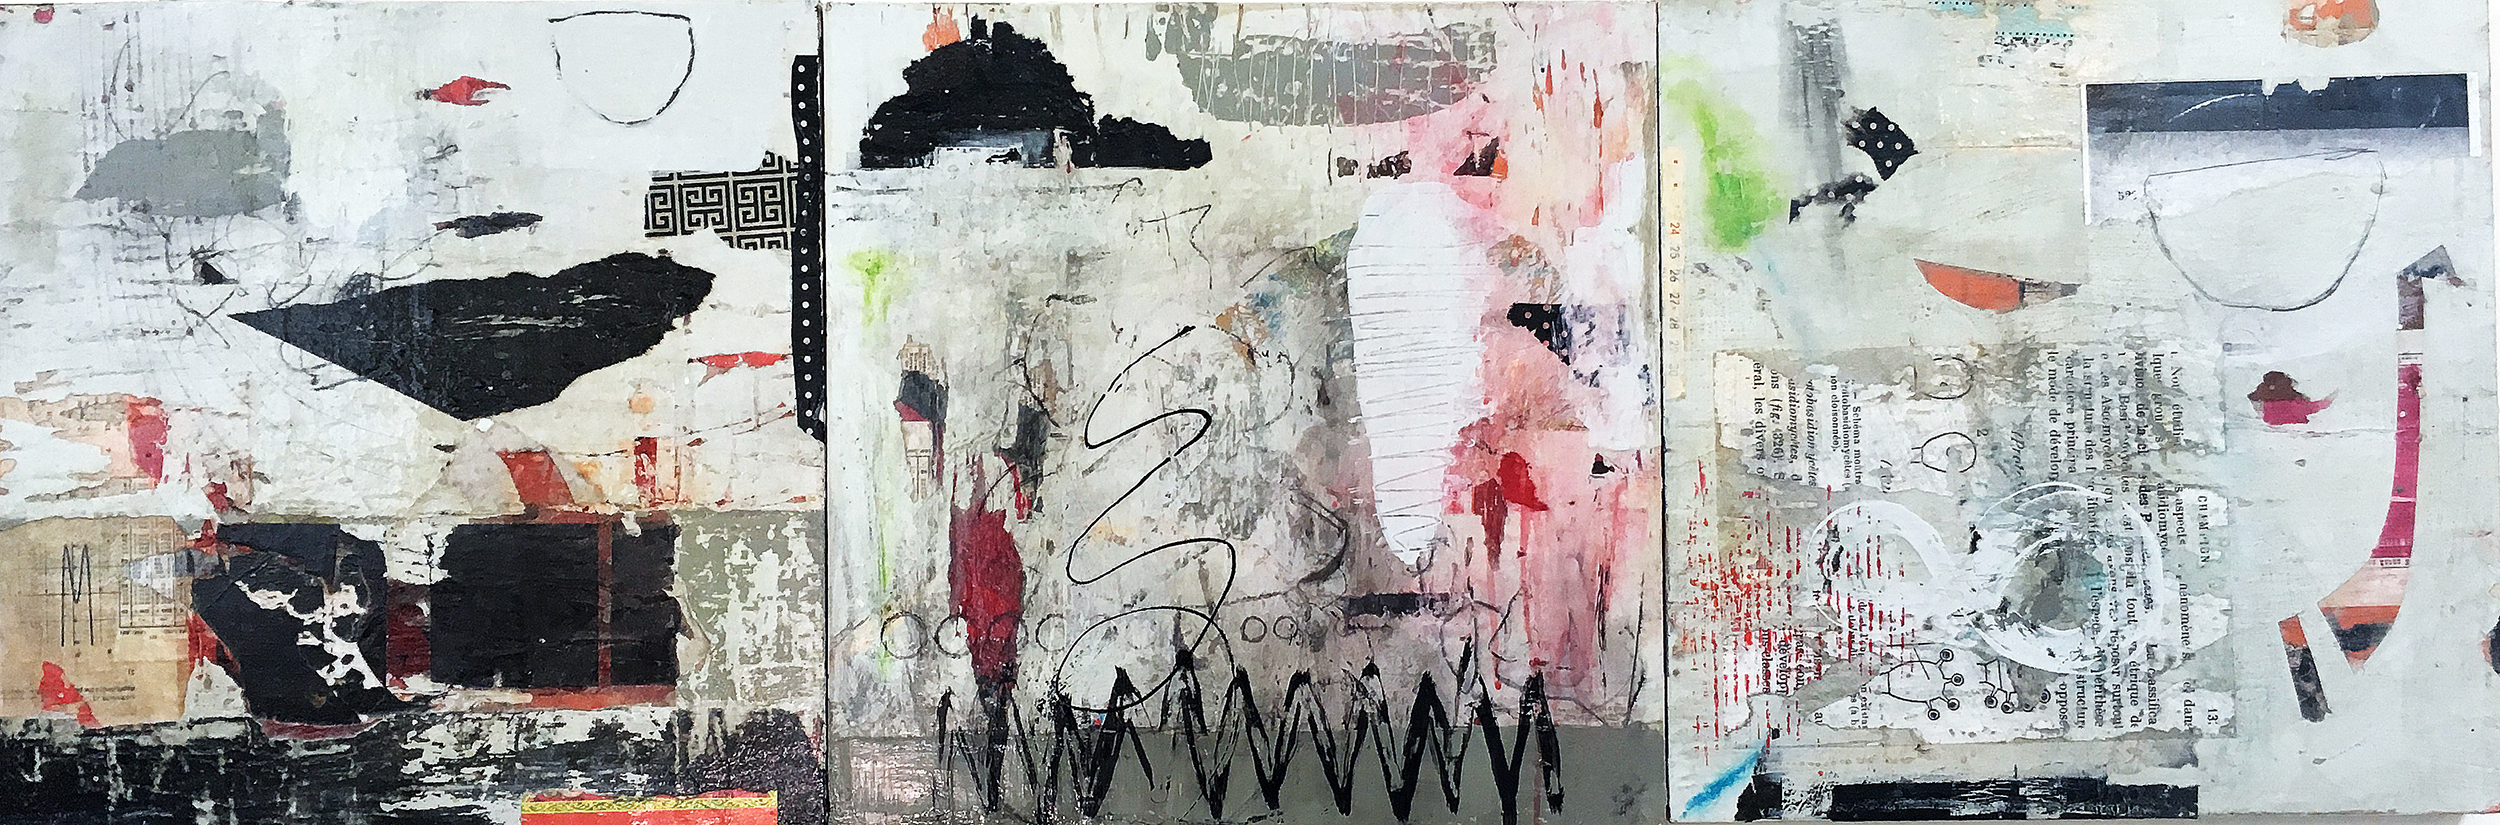 """Silence in Motion III 18"""" x 54""""  2018  Acrylic, paper on panel"""